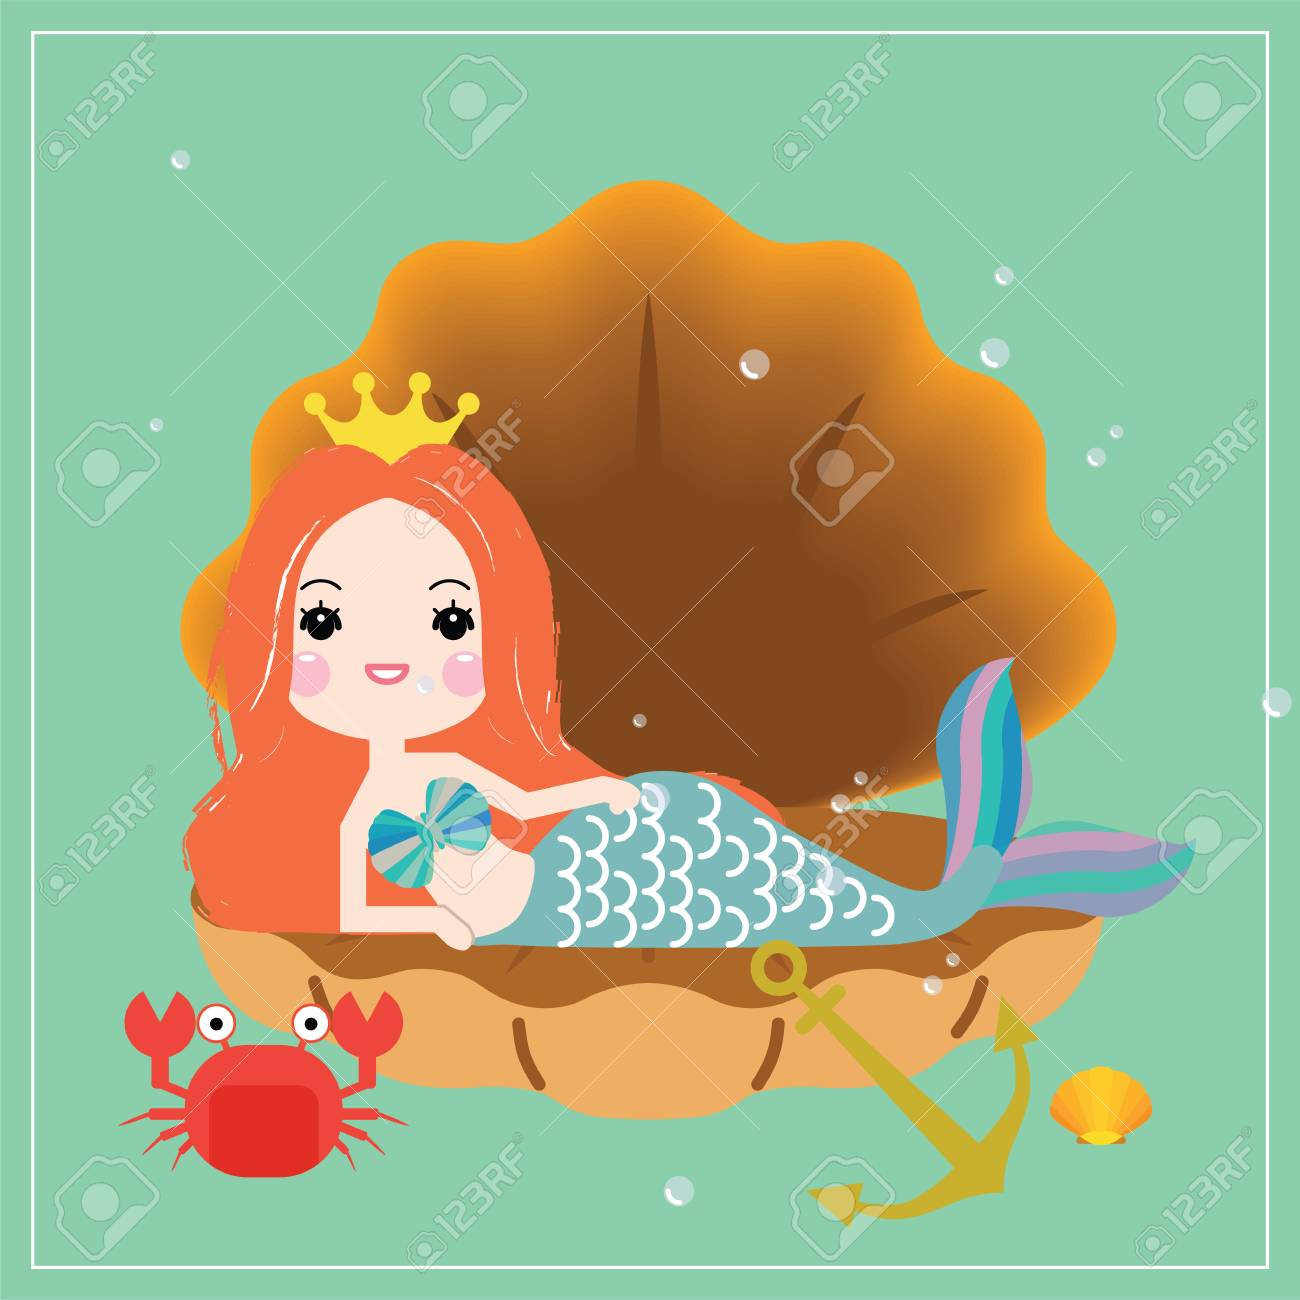 Set Of Illustration Cute Animal And Plant Under Sea Hand Drawn, Cute,  Underwater, Water PNG and Vector with Transparent Background for Free  Download